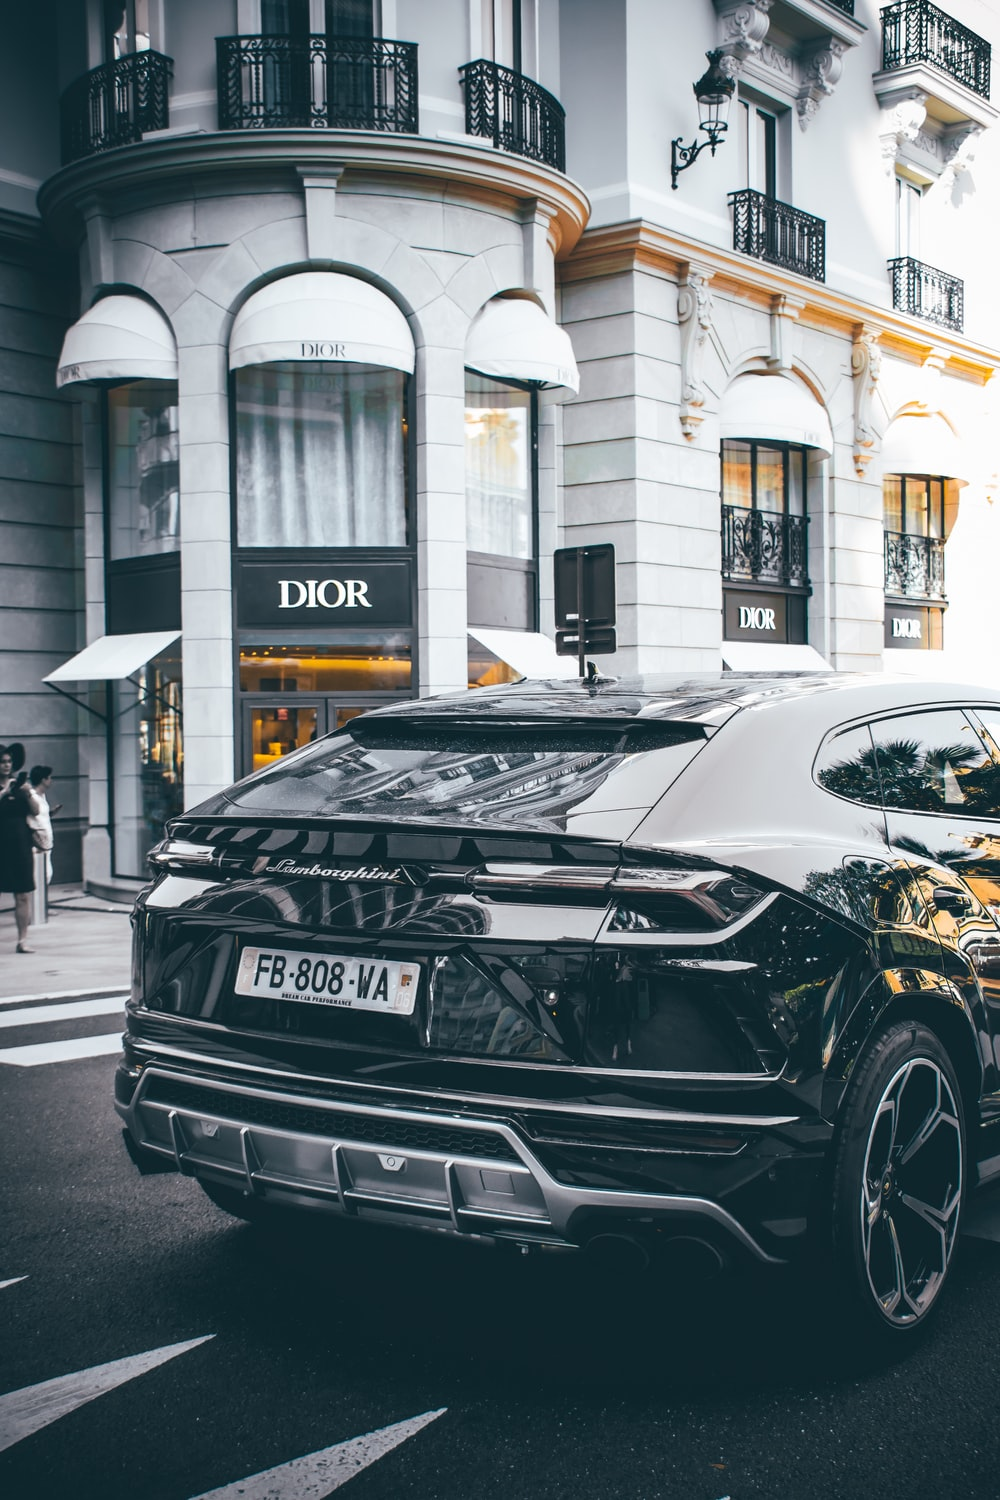 black car photo across Dior store